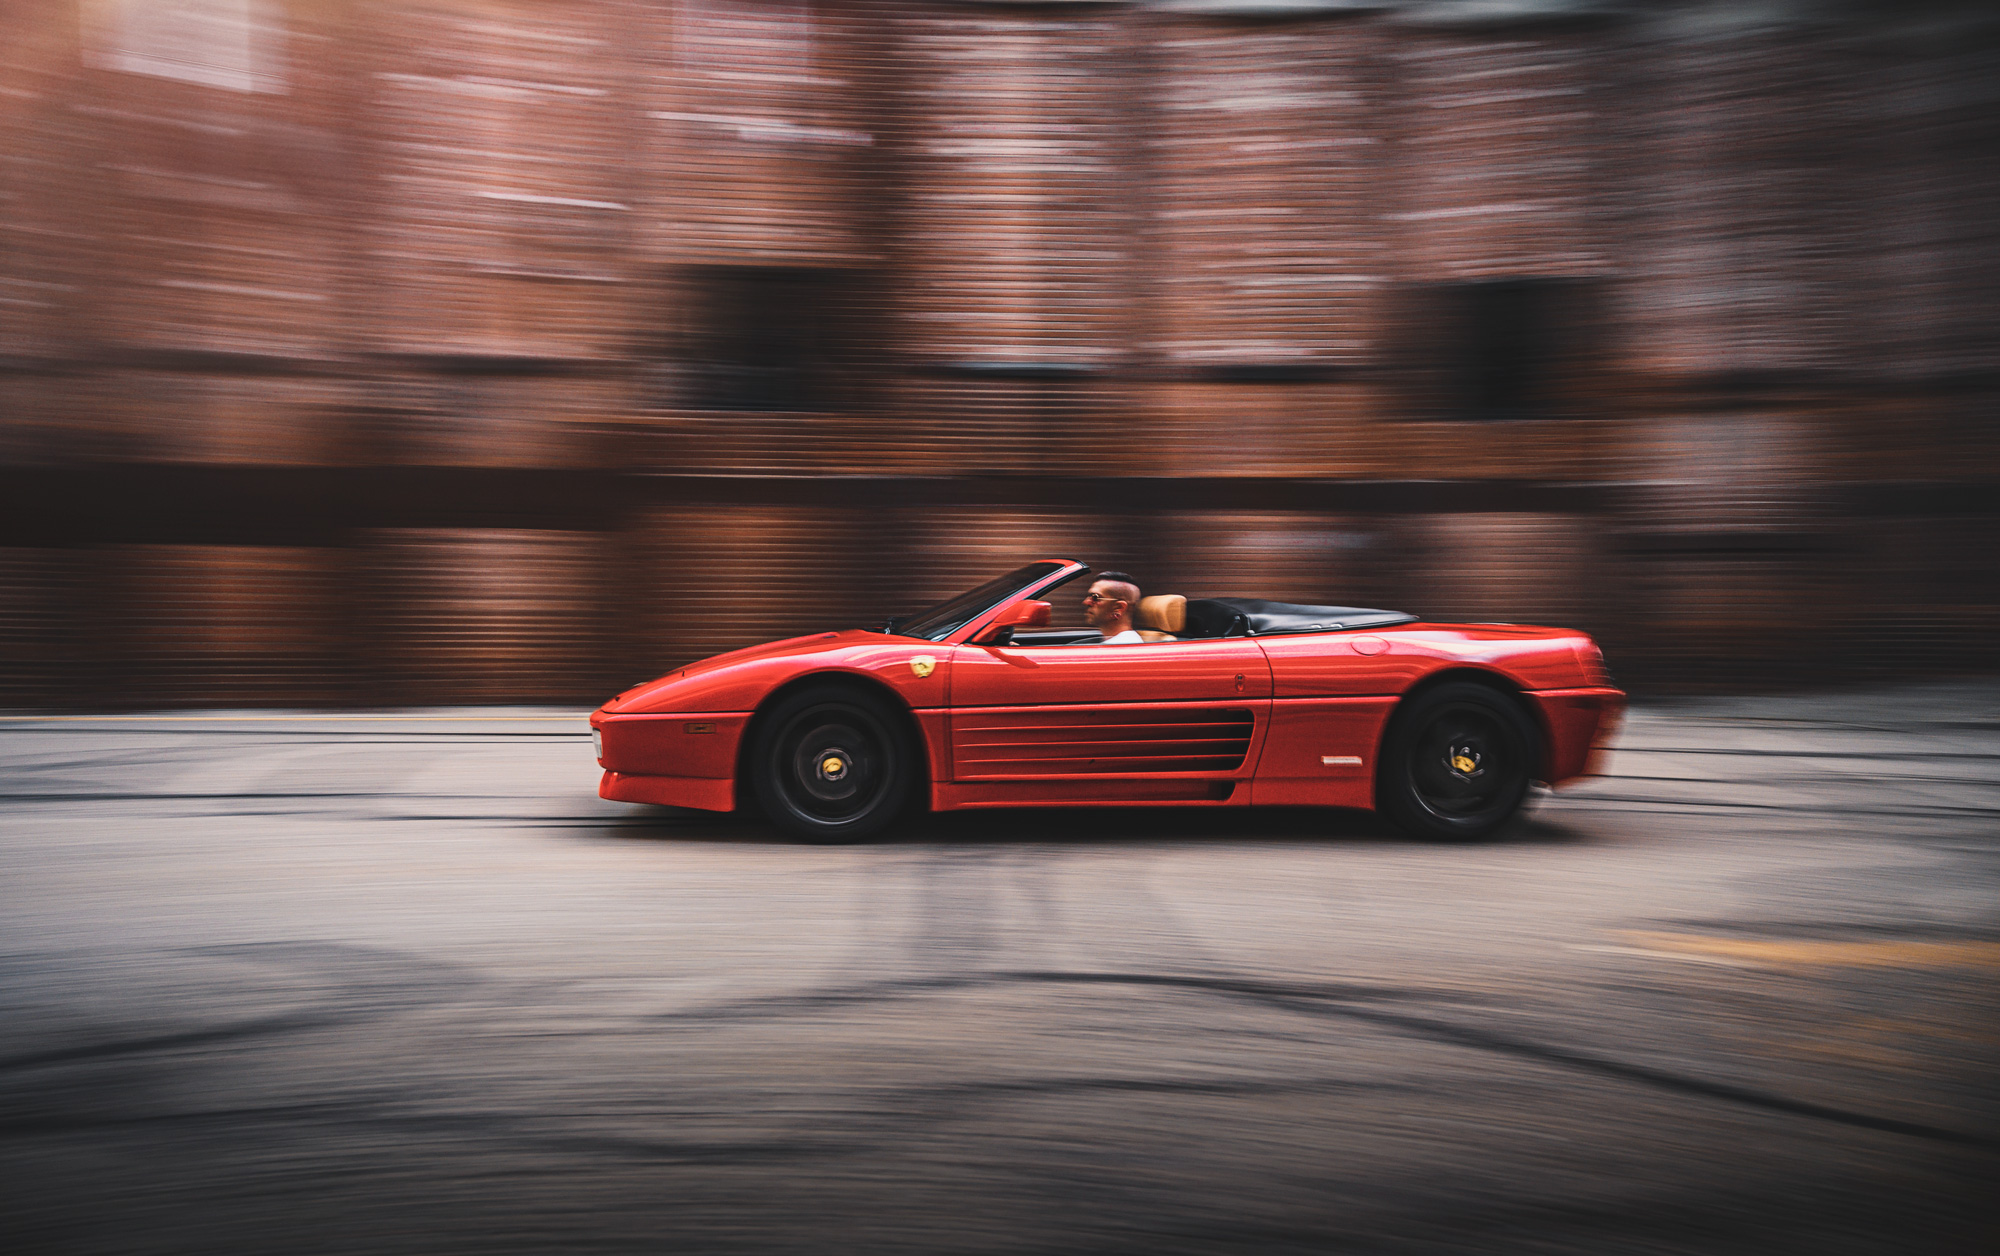 Tutorial: How I shot the Ferrari 348, and shooting a car twice.